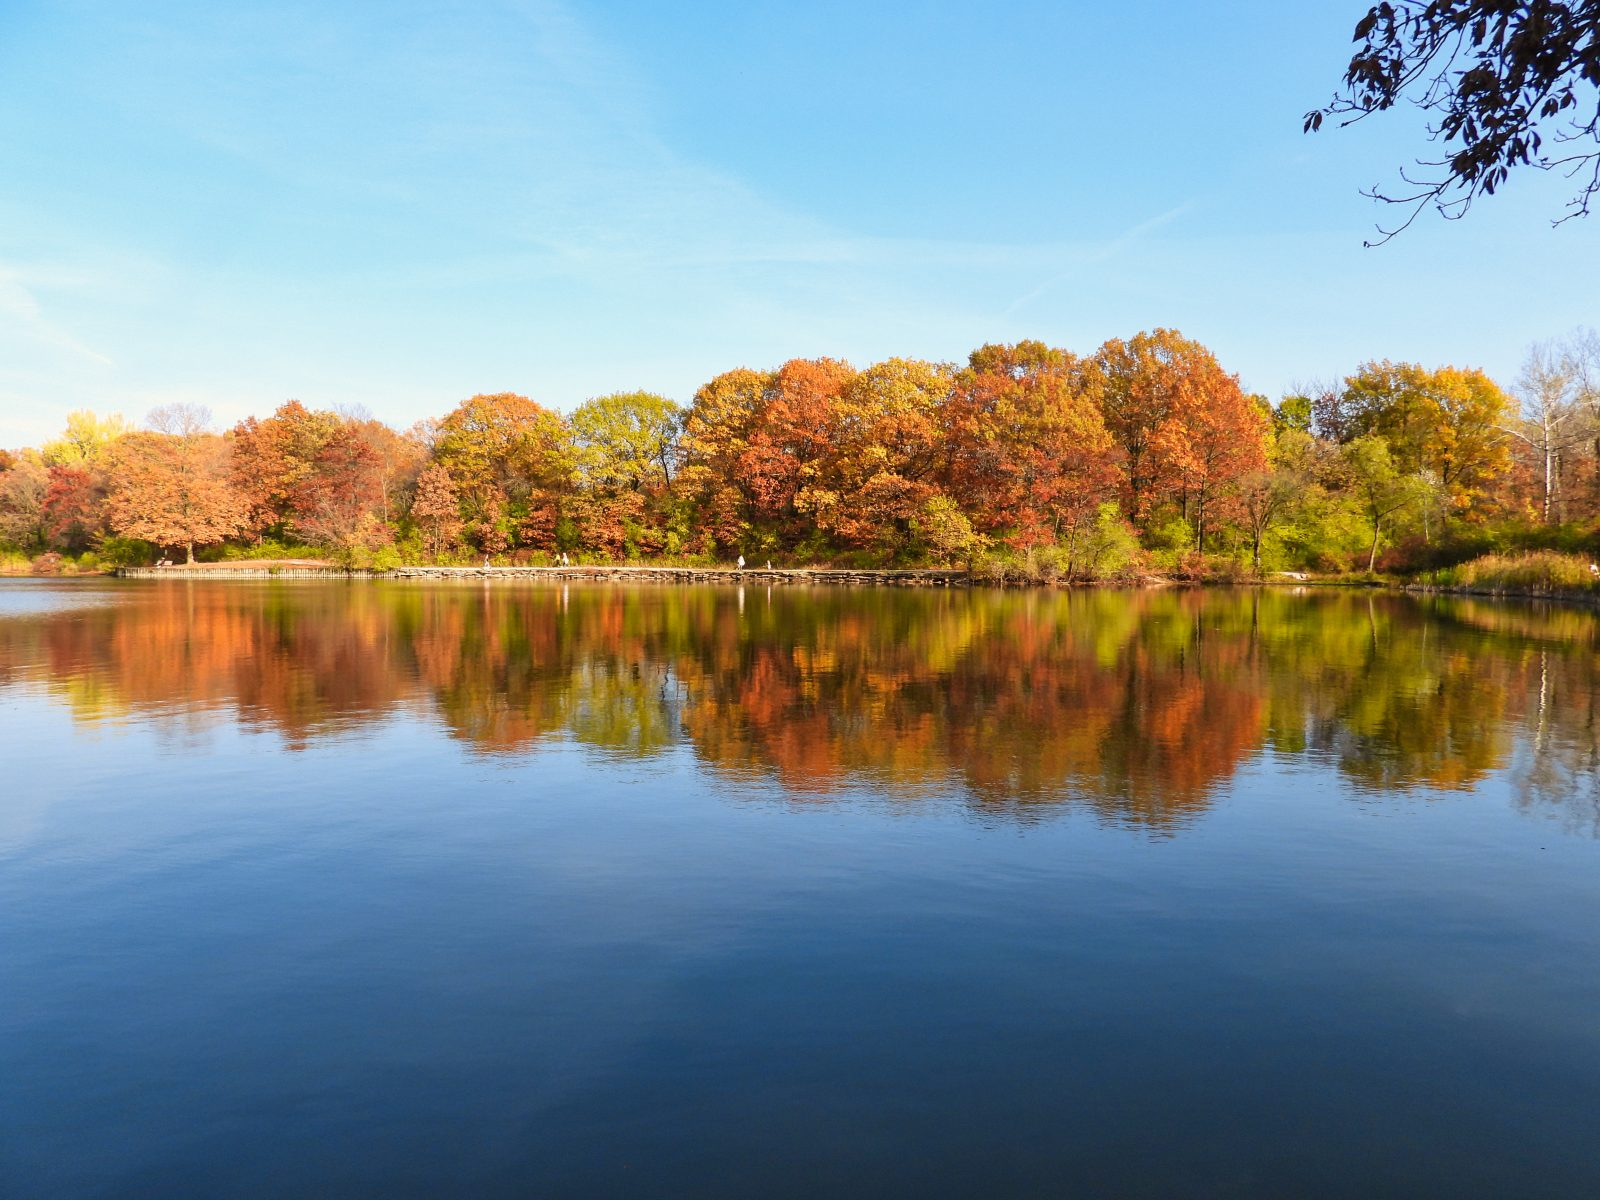 Fall Trees Line Lake Edge in Beautiful Autumn Colors of Orange, Yellow, Red, Brown and Green Reflect in Water on a Beautiful Late Fall Day at Park in Landscape View Scenic Calm Tranquil Pretty